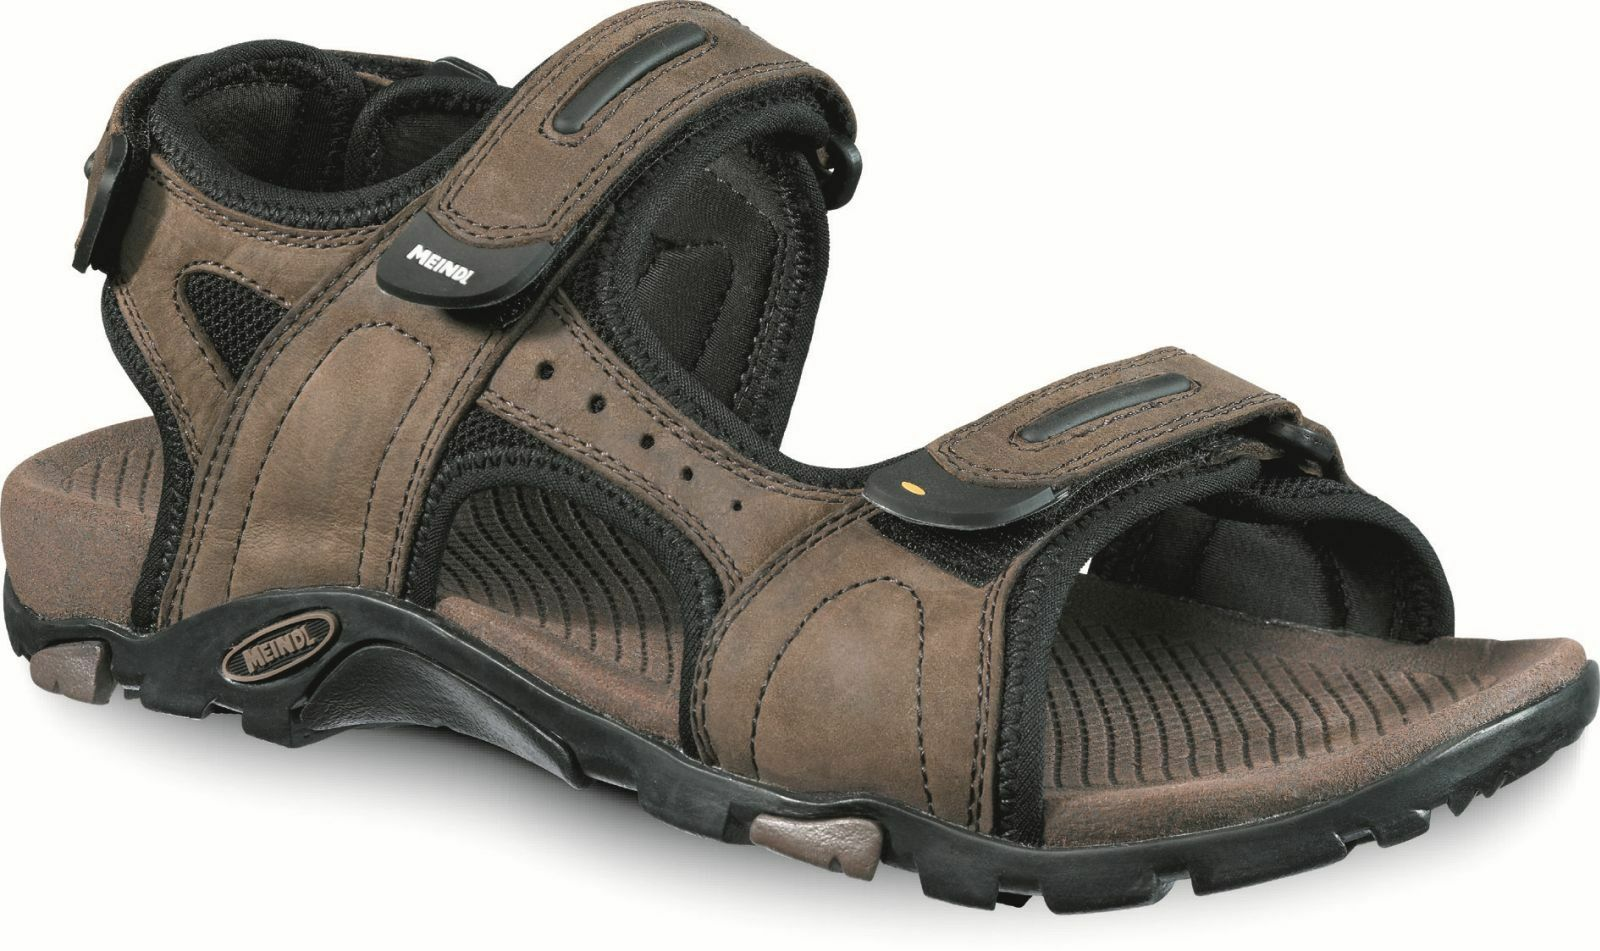 Meindl manly outdoor and hiking capri sandal